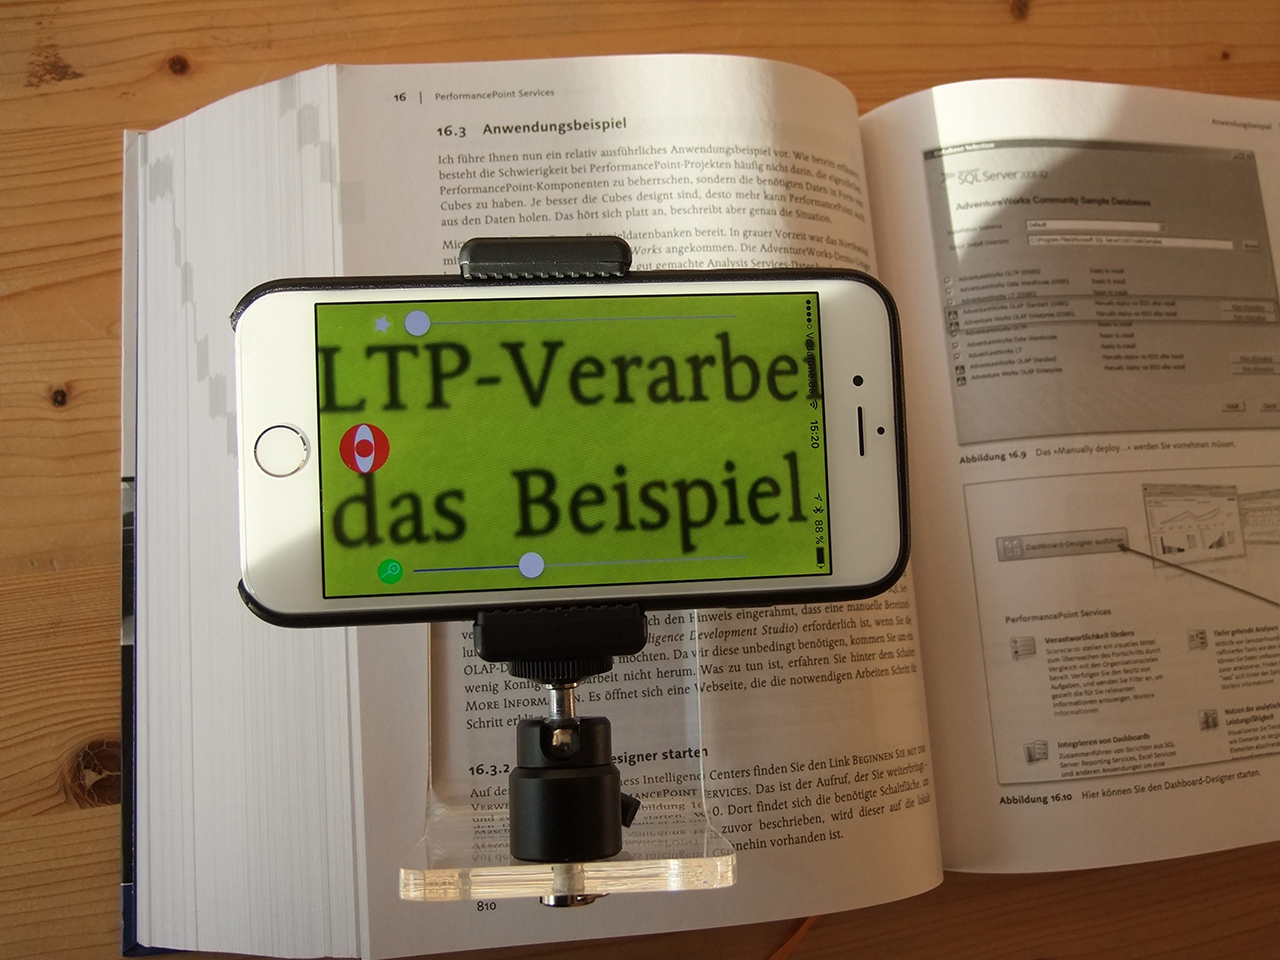 SmartReader with iPhone 6 running Magnifier App